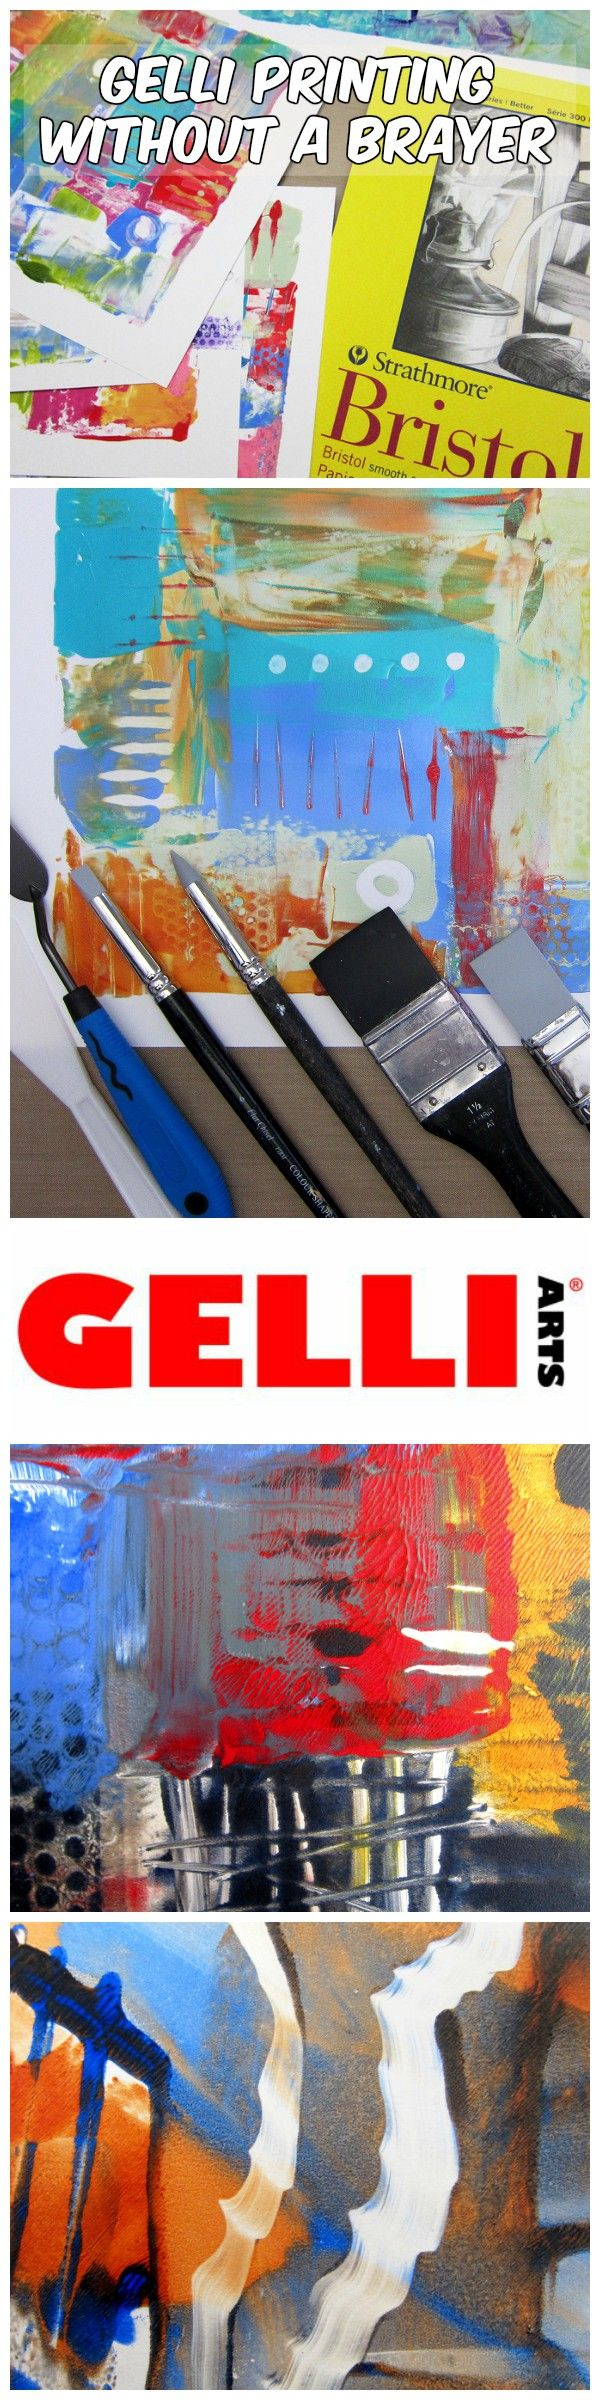 239 best gelli arts blog posts images on pinterest art blog instead of using a brayer to apply paint to the gelli plate lets change baditri Gallery